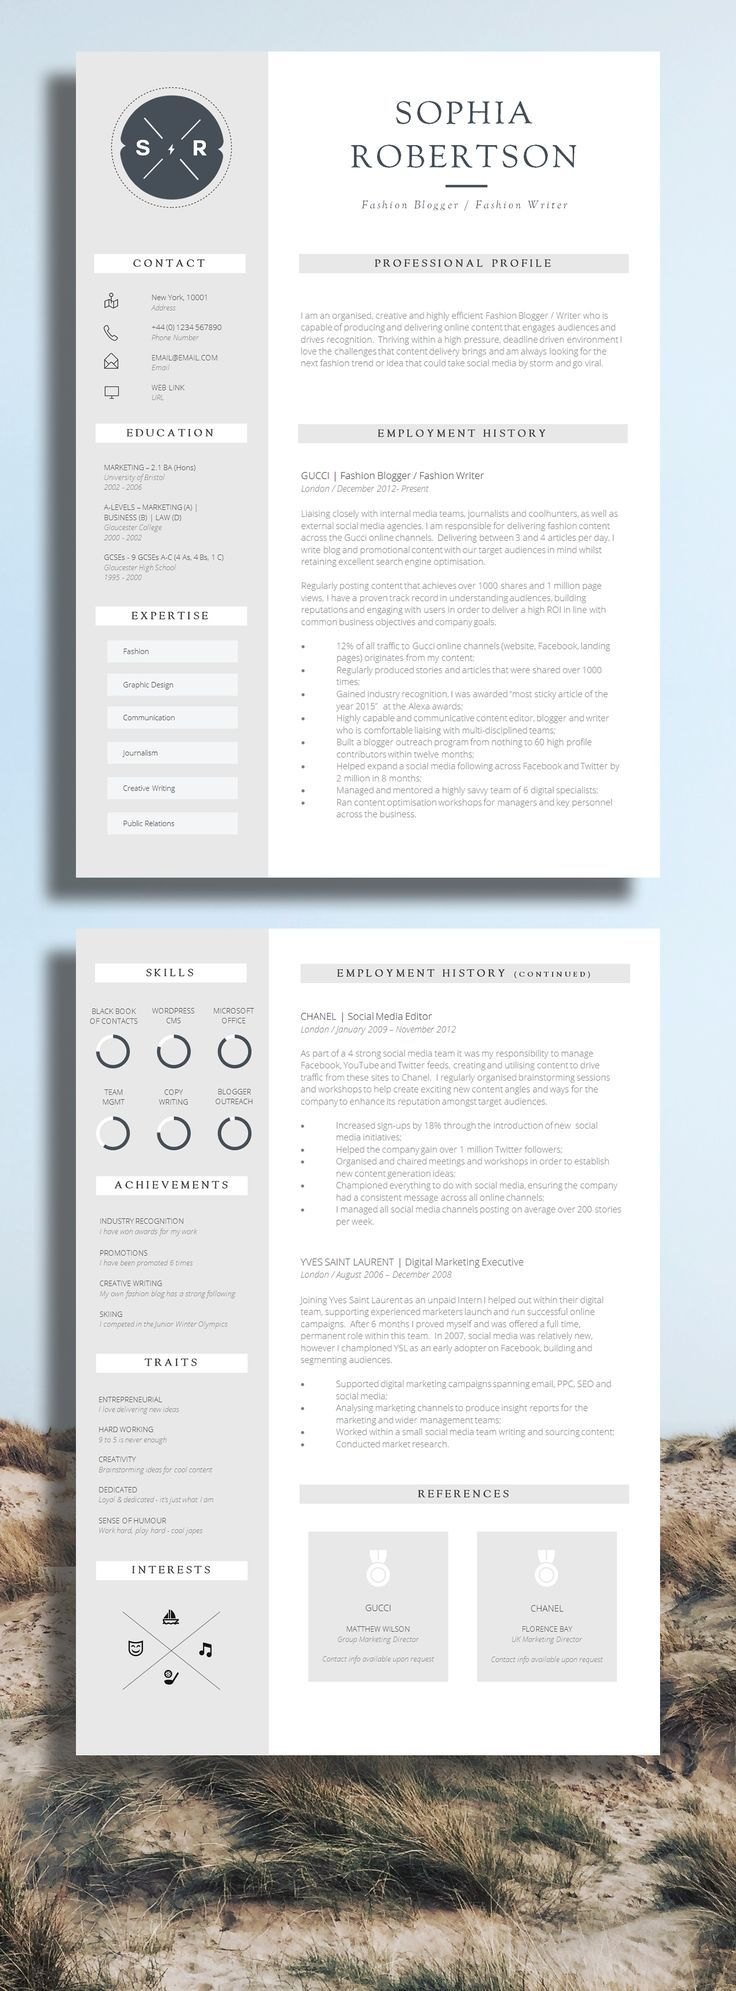 Interviews On Creative Living Interior: 1000+ Ideas About Creative Resume Templates On Pinterest